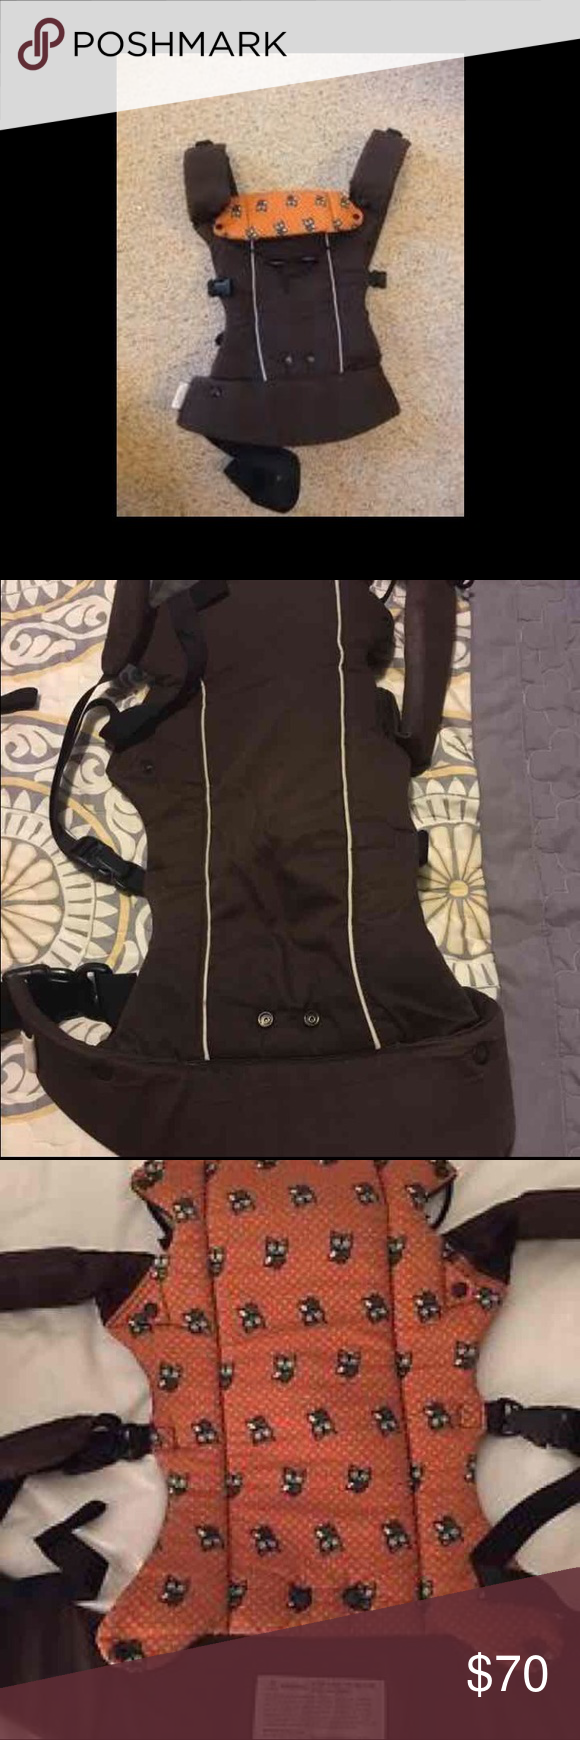 Beco Gemini Baby Carrrier Beco Gemini Baby Carrier Espresso on outside with orange/owls on inside  You can front carry with baby facing you or forward facing / back carry / hip carry!  If you need more pics just request what specific pics you want and I will send. Beco Other